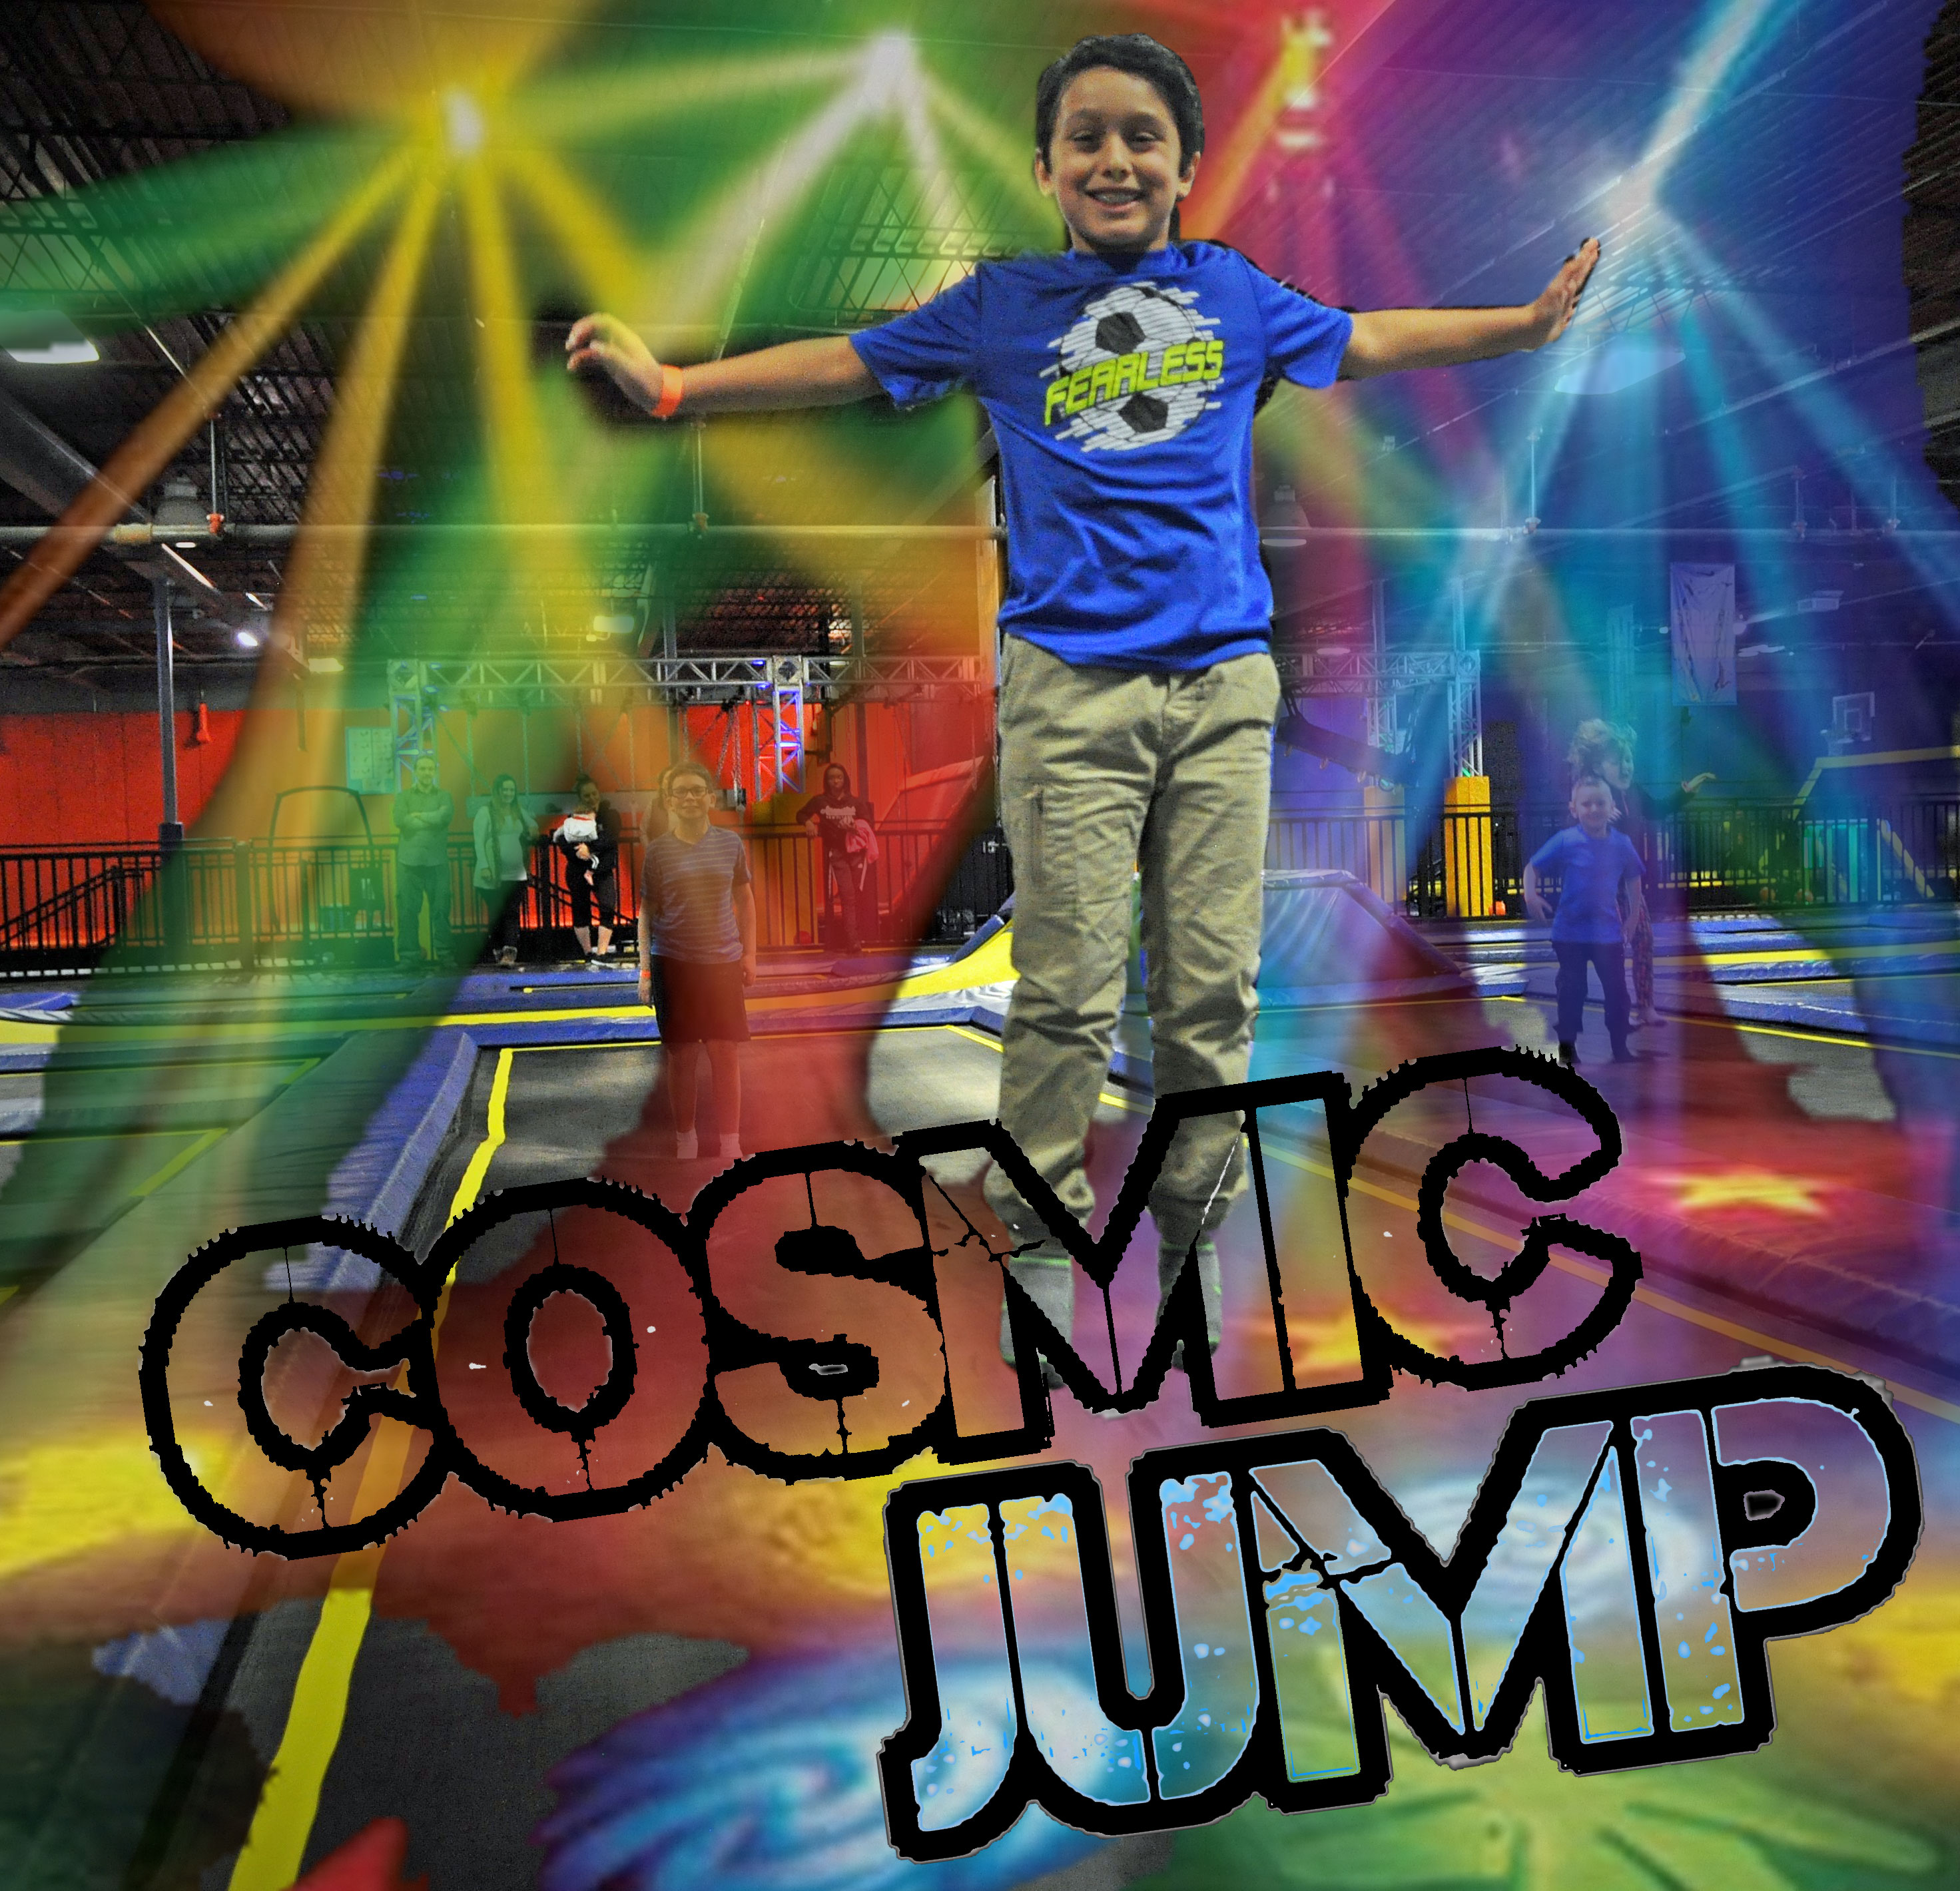 FRIDAY COSMIC TEEN JUMP